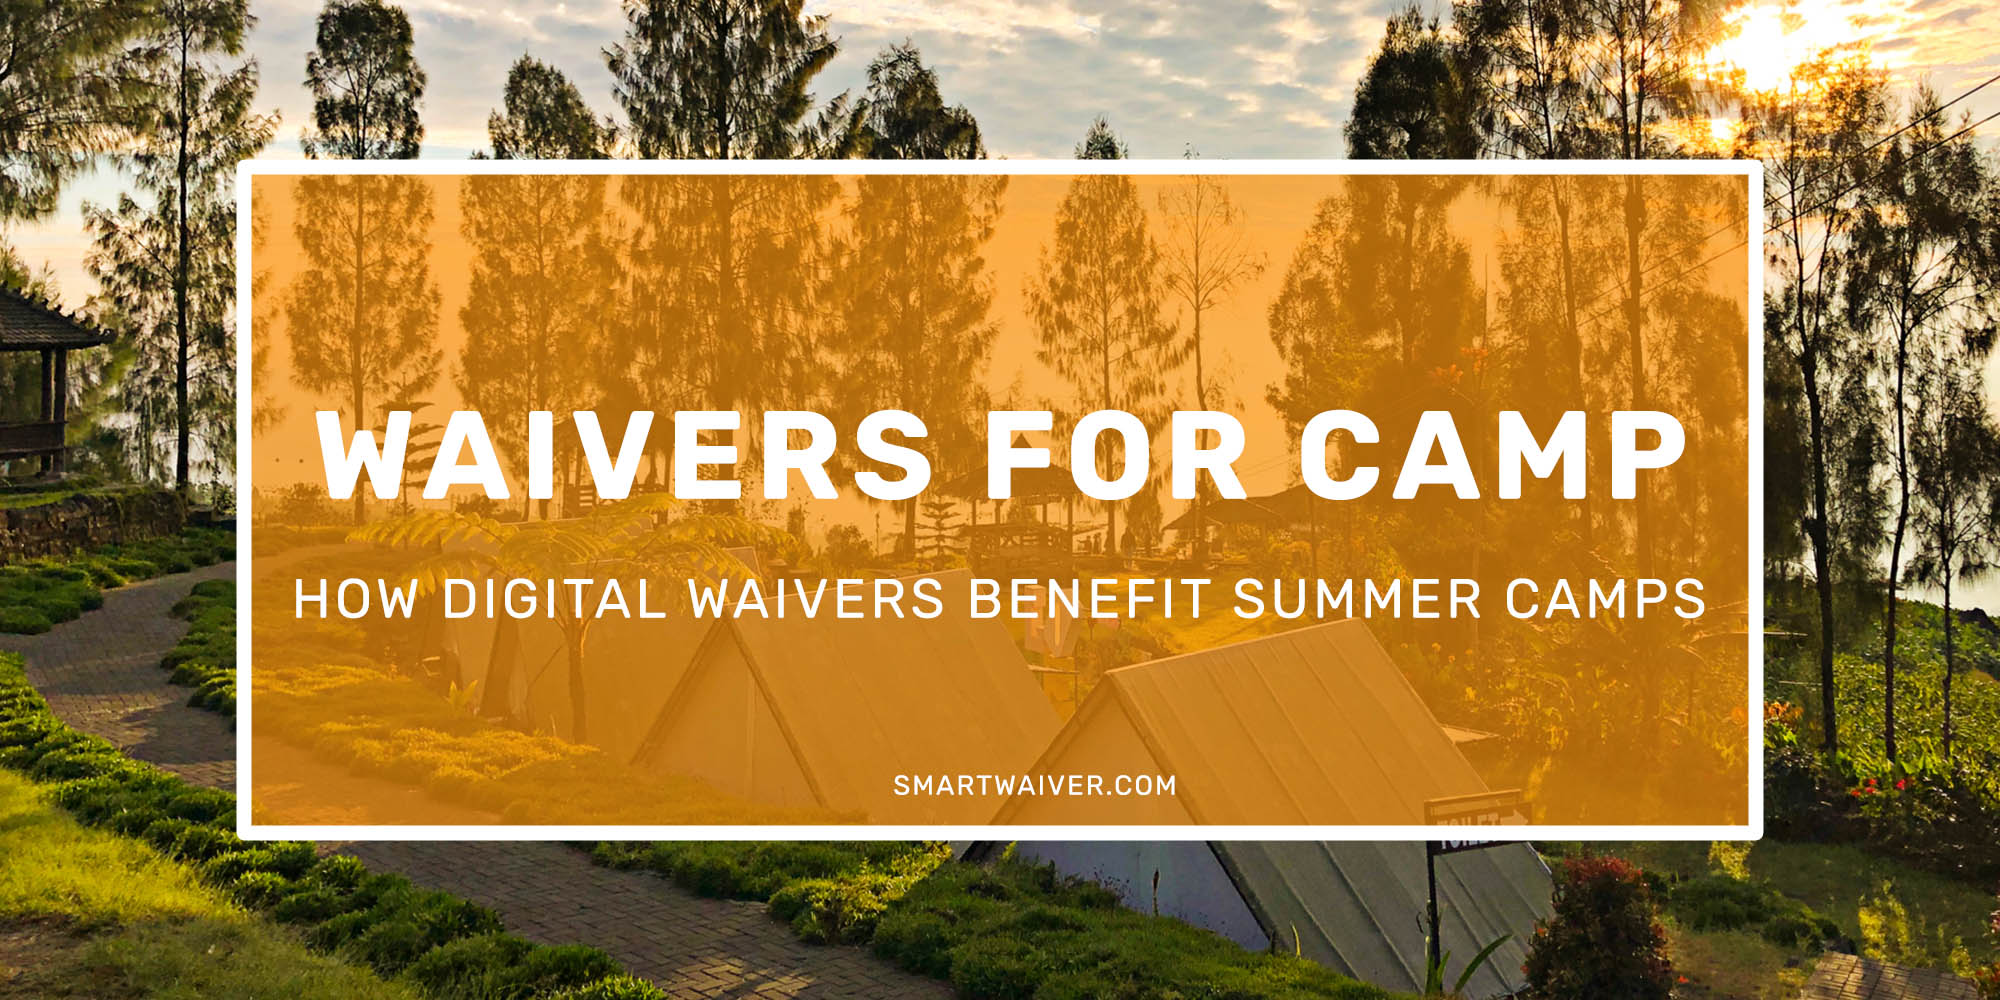 Digital Waivers for Camp